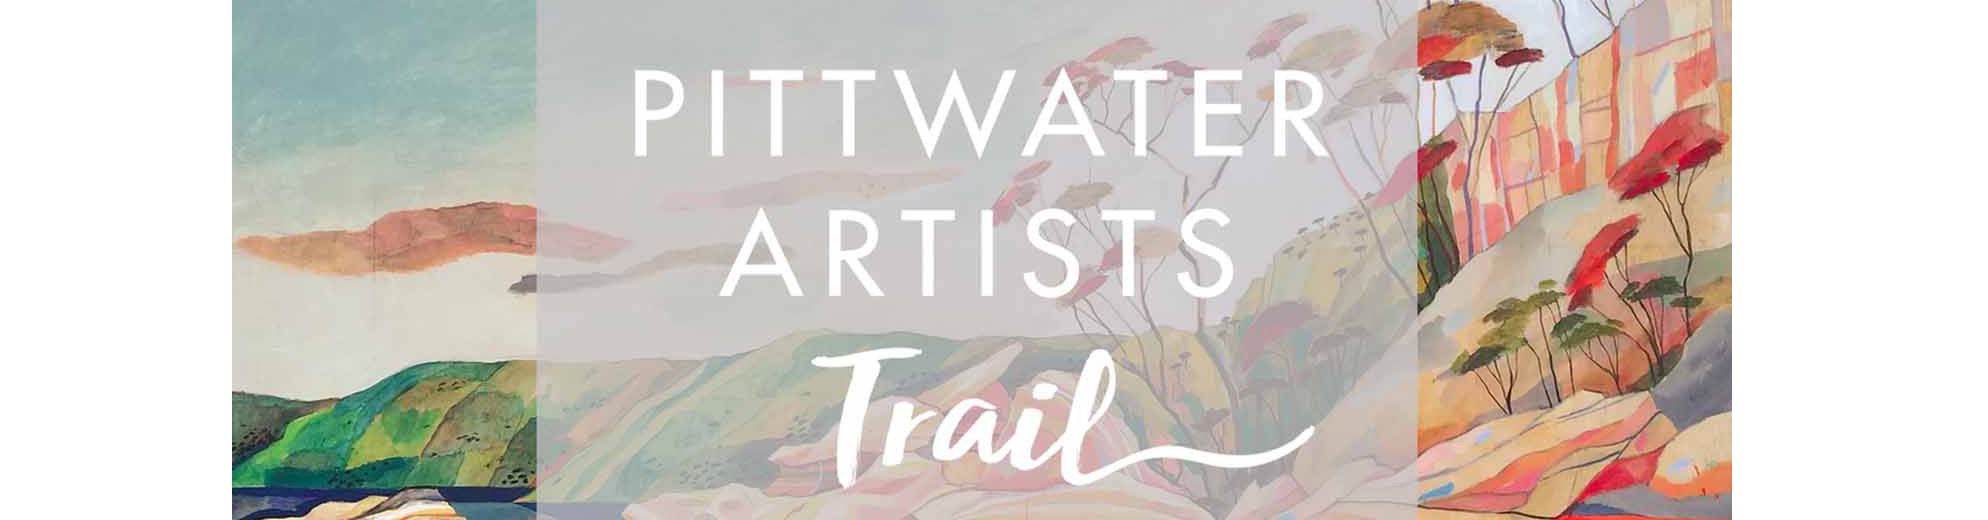 PITTWATER ARTISTS TRAIL 2020 @ERAMBOO 7TH – 8TH MARCH